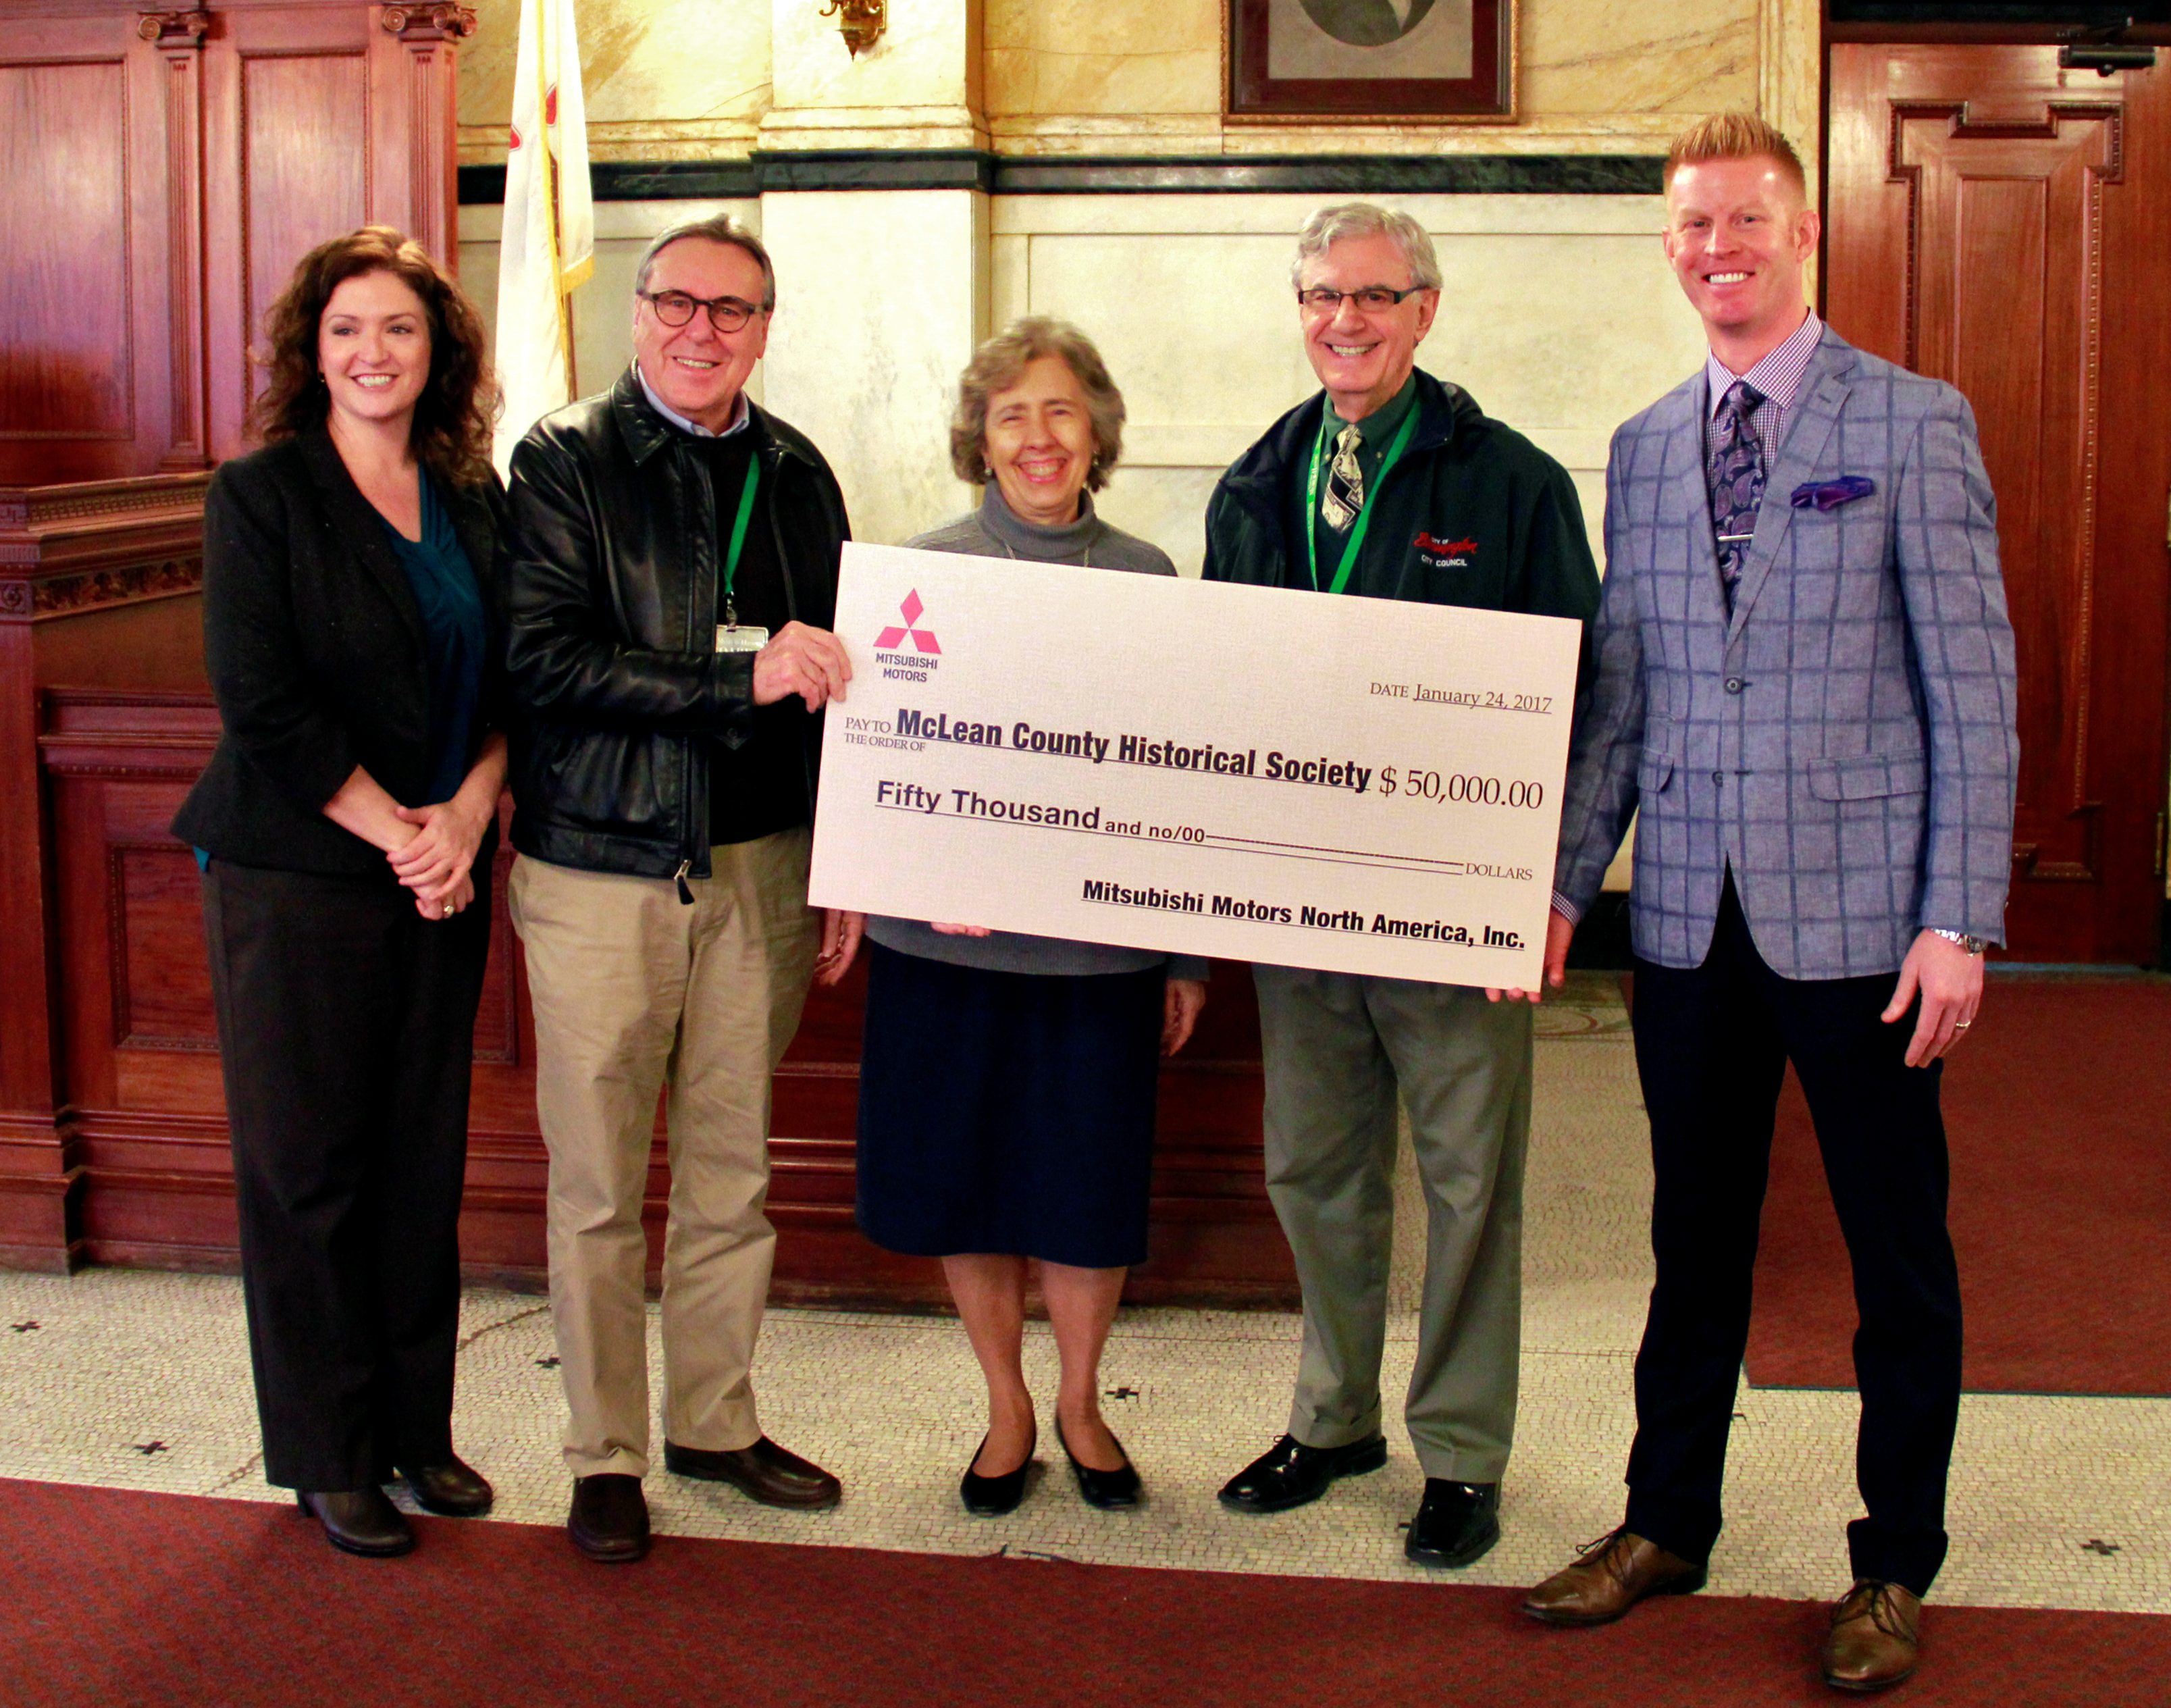 Ryan Gremore, general manager and operating partner of O'Brien Mitsubishi of Normal (far righ) presents a $50,000 donation to Museum board members and Museum Executive Director Beth Whisman.